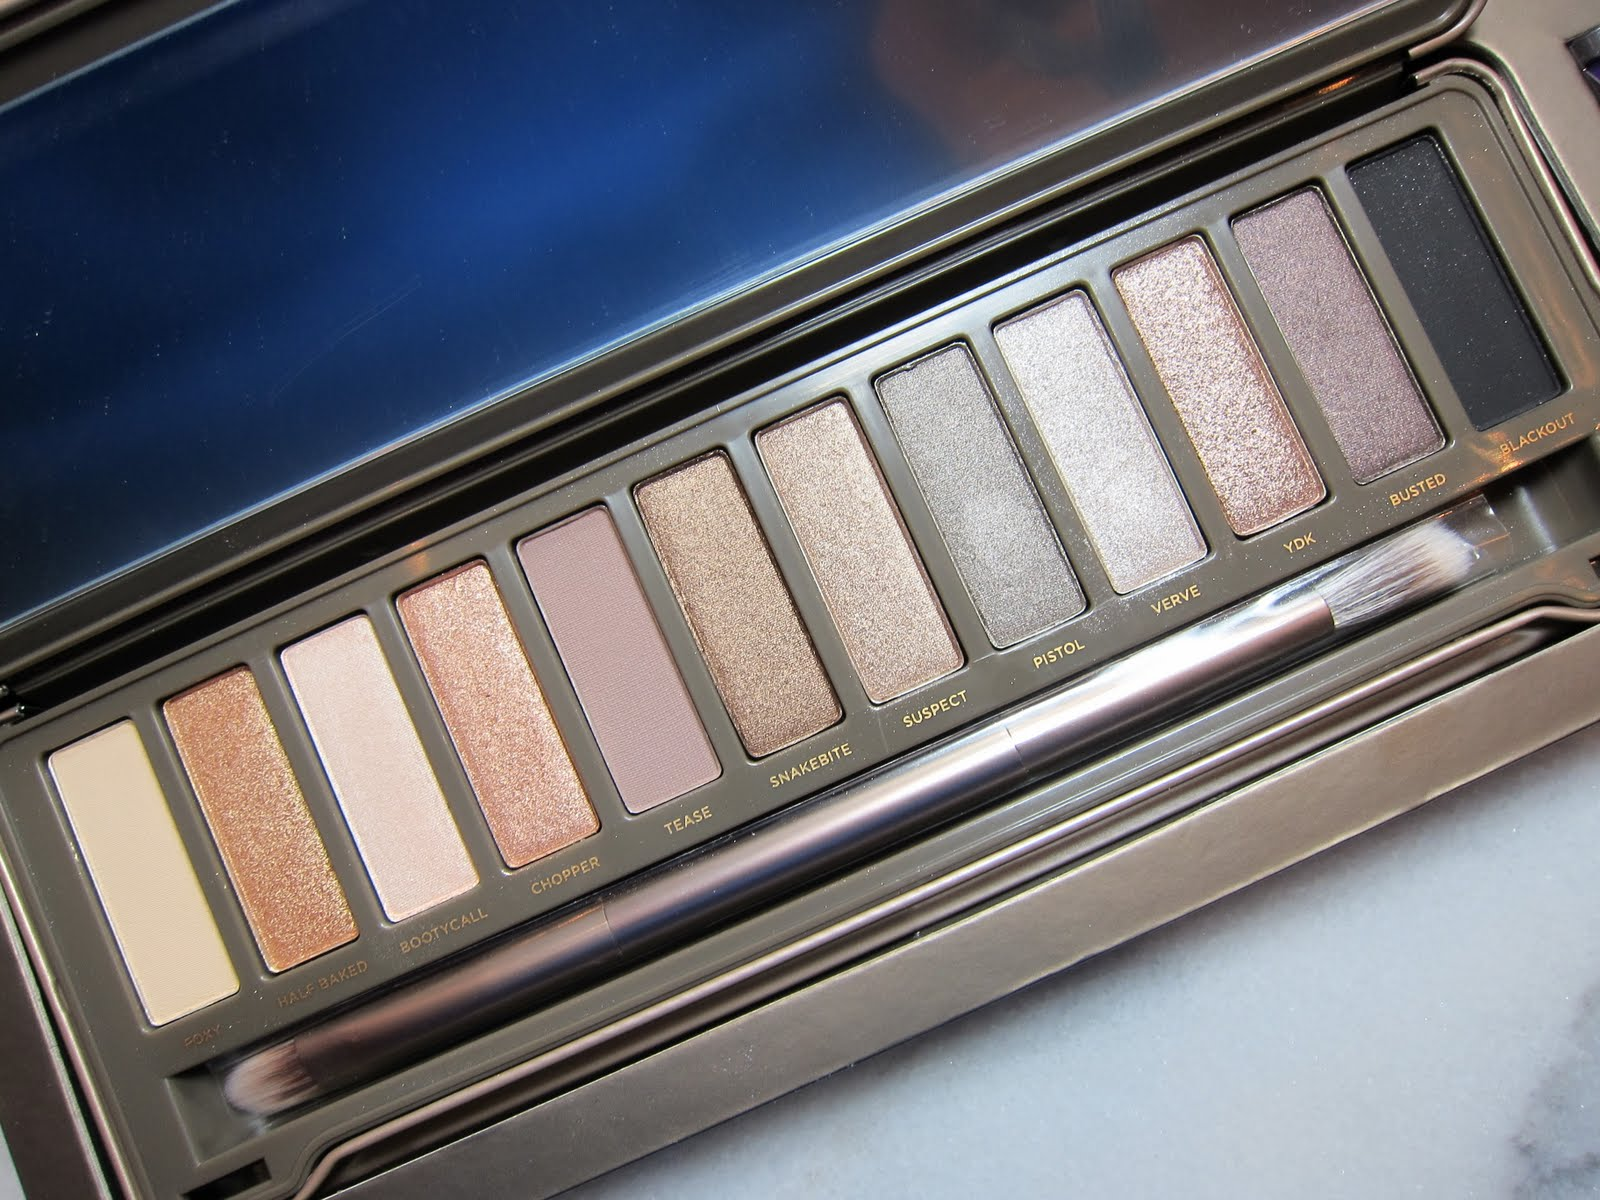 Urban Decay Vice 2 Eyeshadow Palette Review, Photos ... |Urban Decay Palette 2